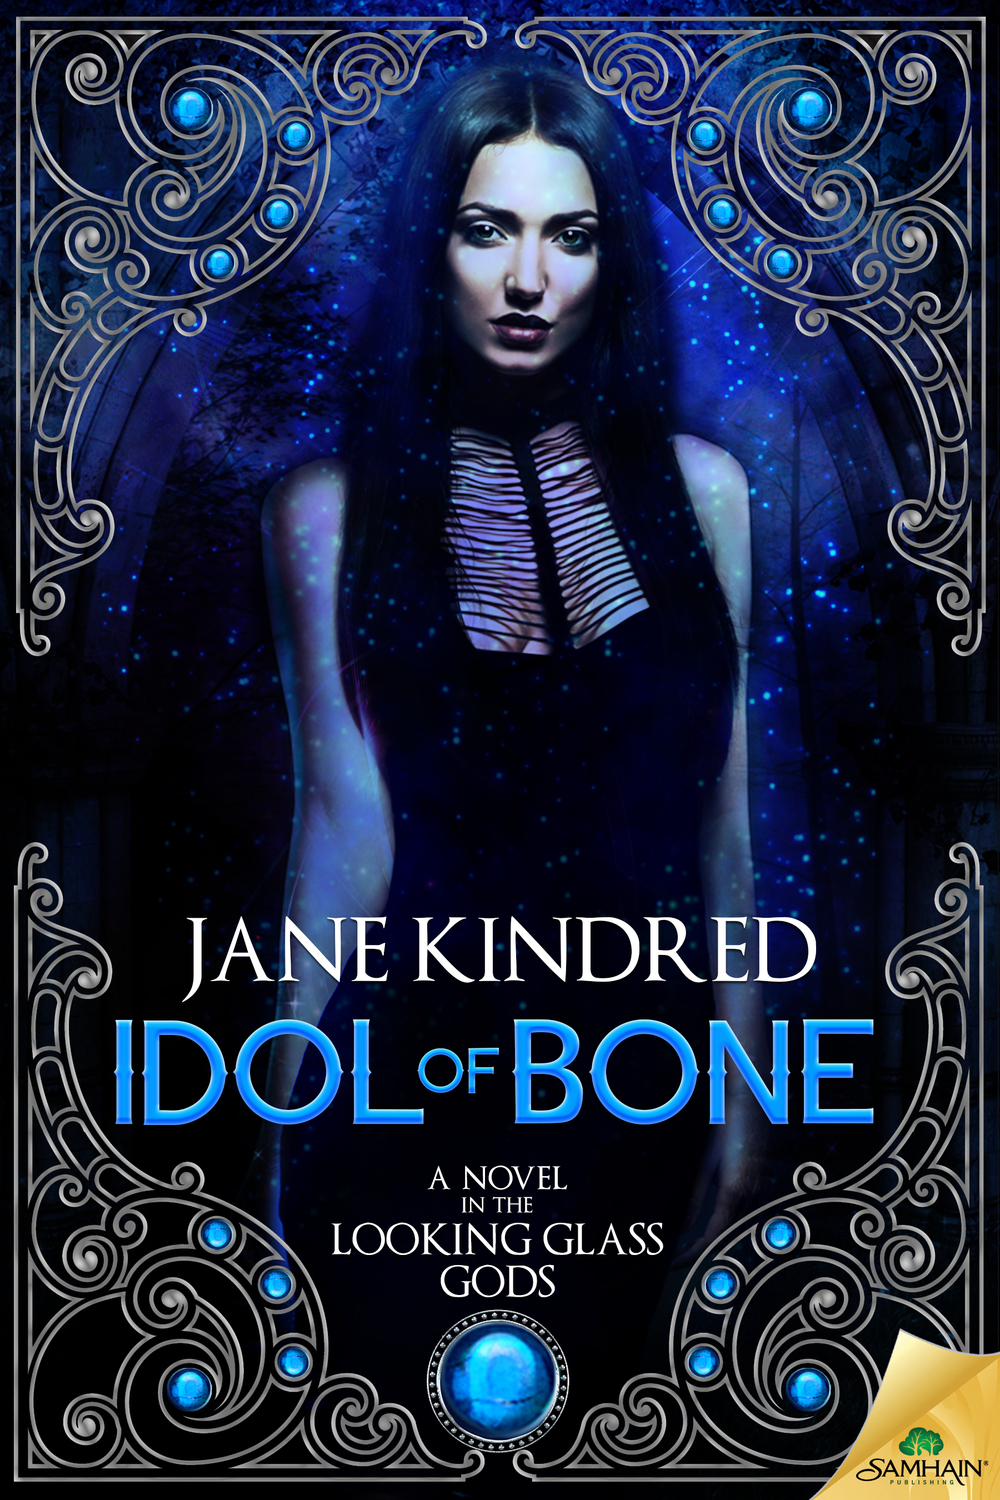 Idol of Bone, Book 1 in the Looking Glass Gods